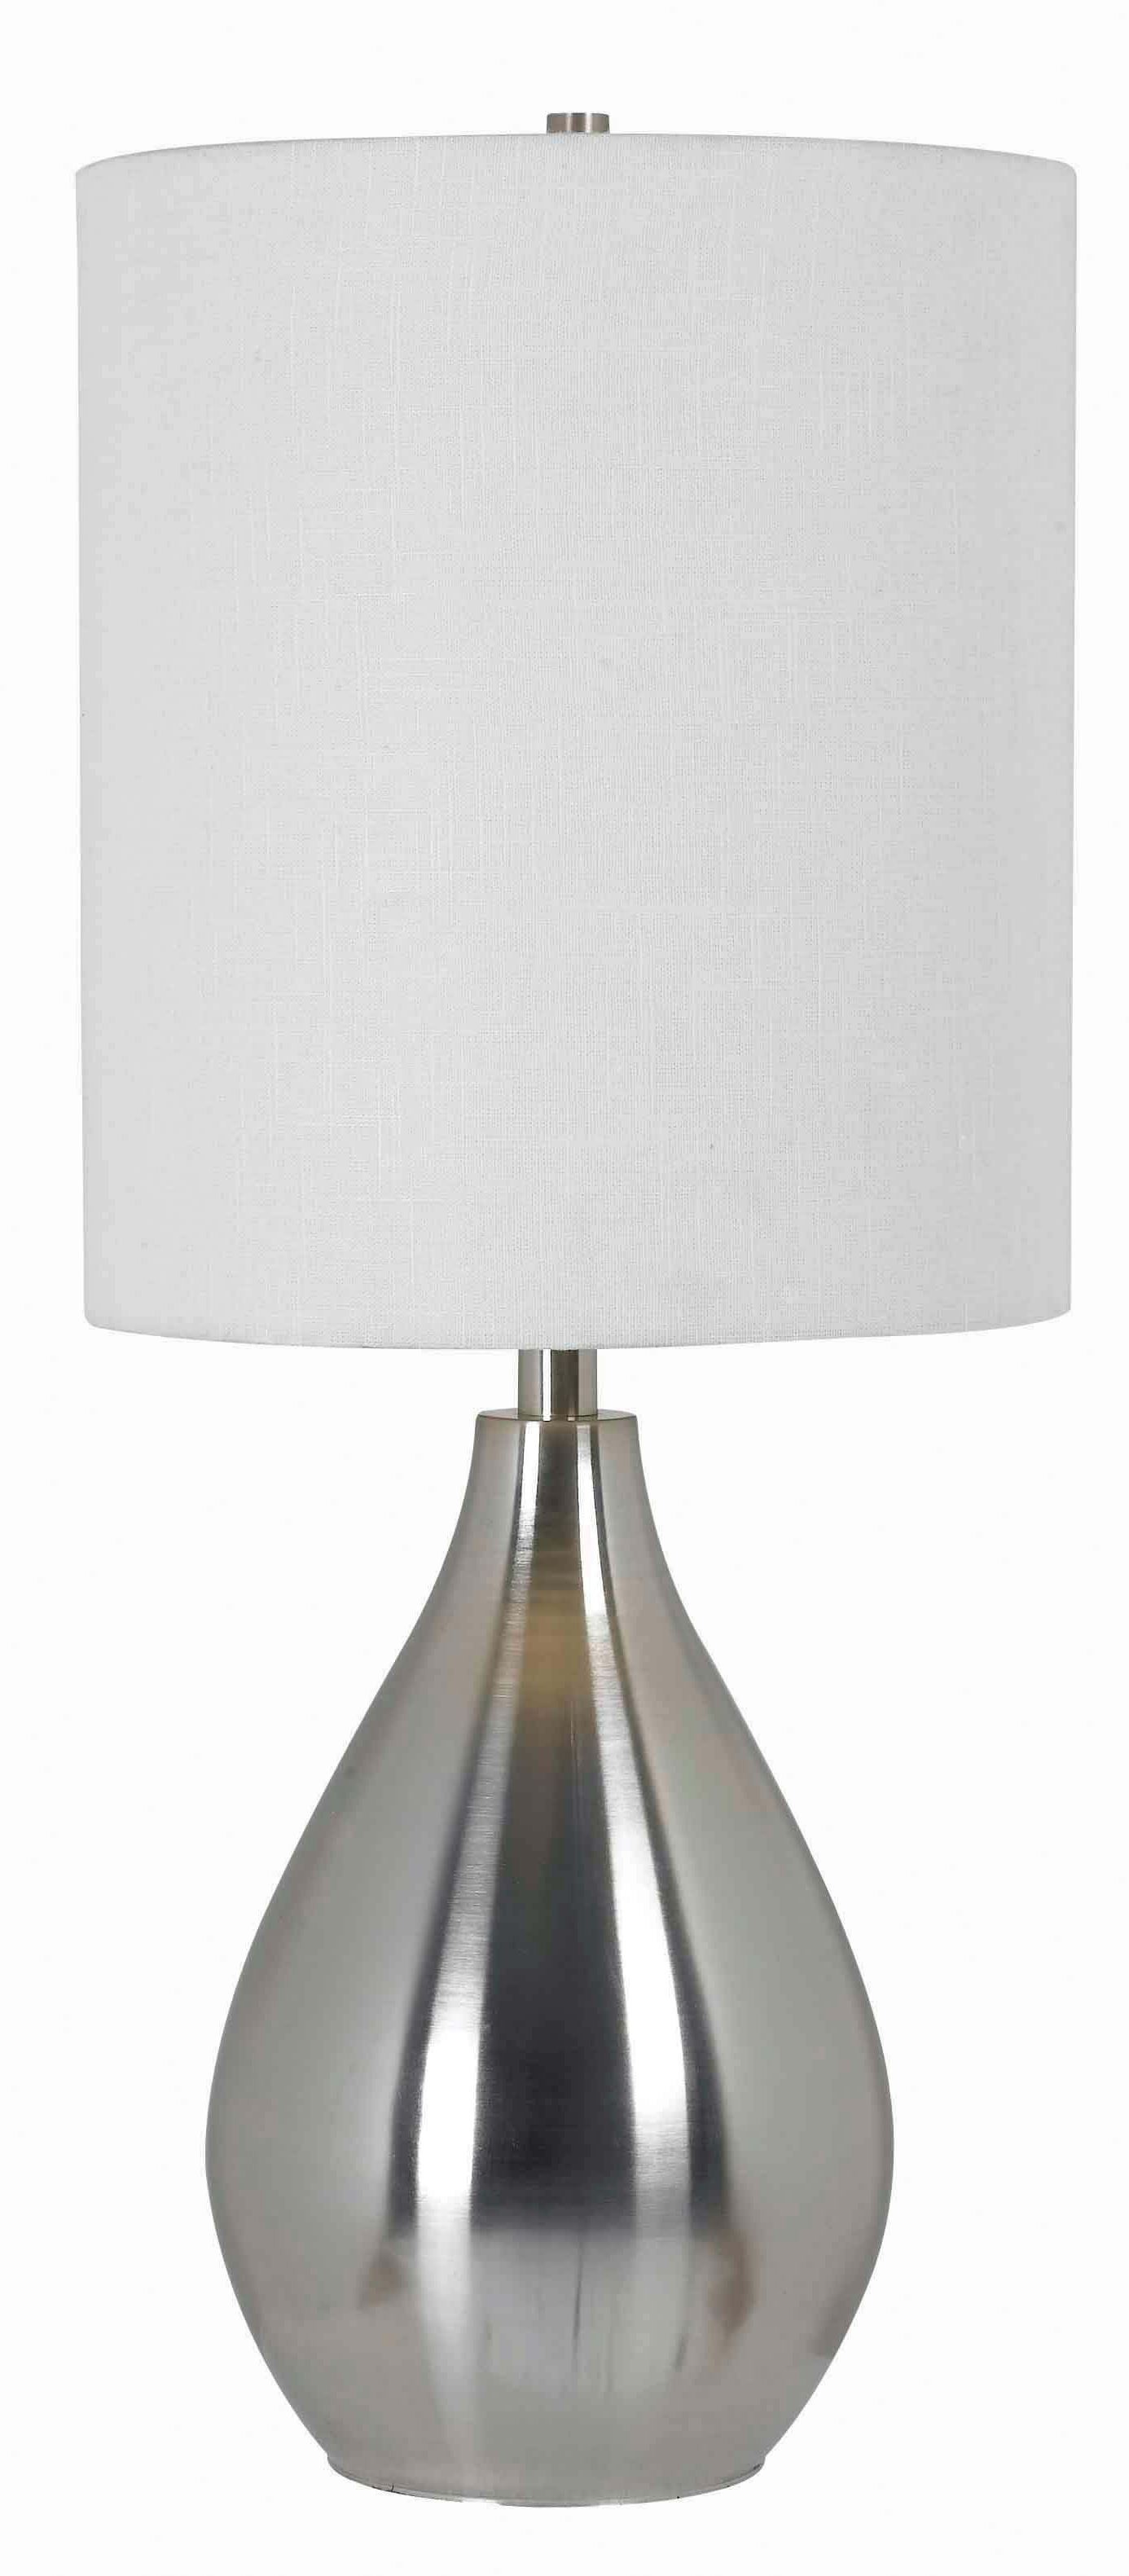 Droplet Table Lamp from Kenroy (32156BS)